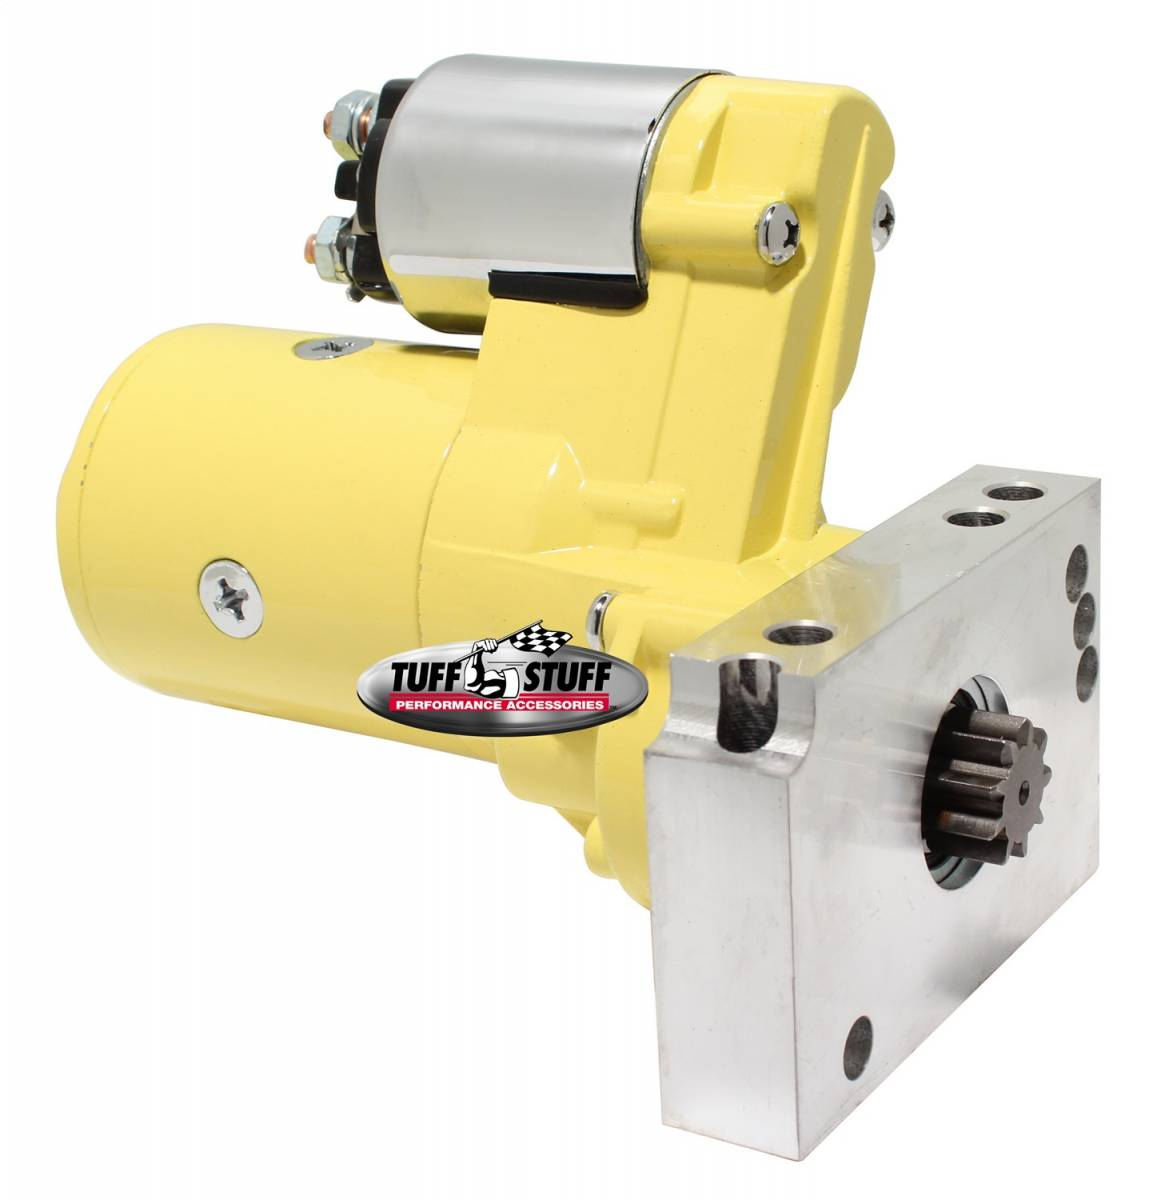 Tuff Stuff Performance - Gear Reduction Starter 1.4 KW 1.9 HP w/Straight Mounting Block 153 or 168 Tooth Flywheel Yellow Powdercoat w/Chrome Accents 6584BYELLOW